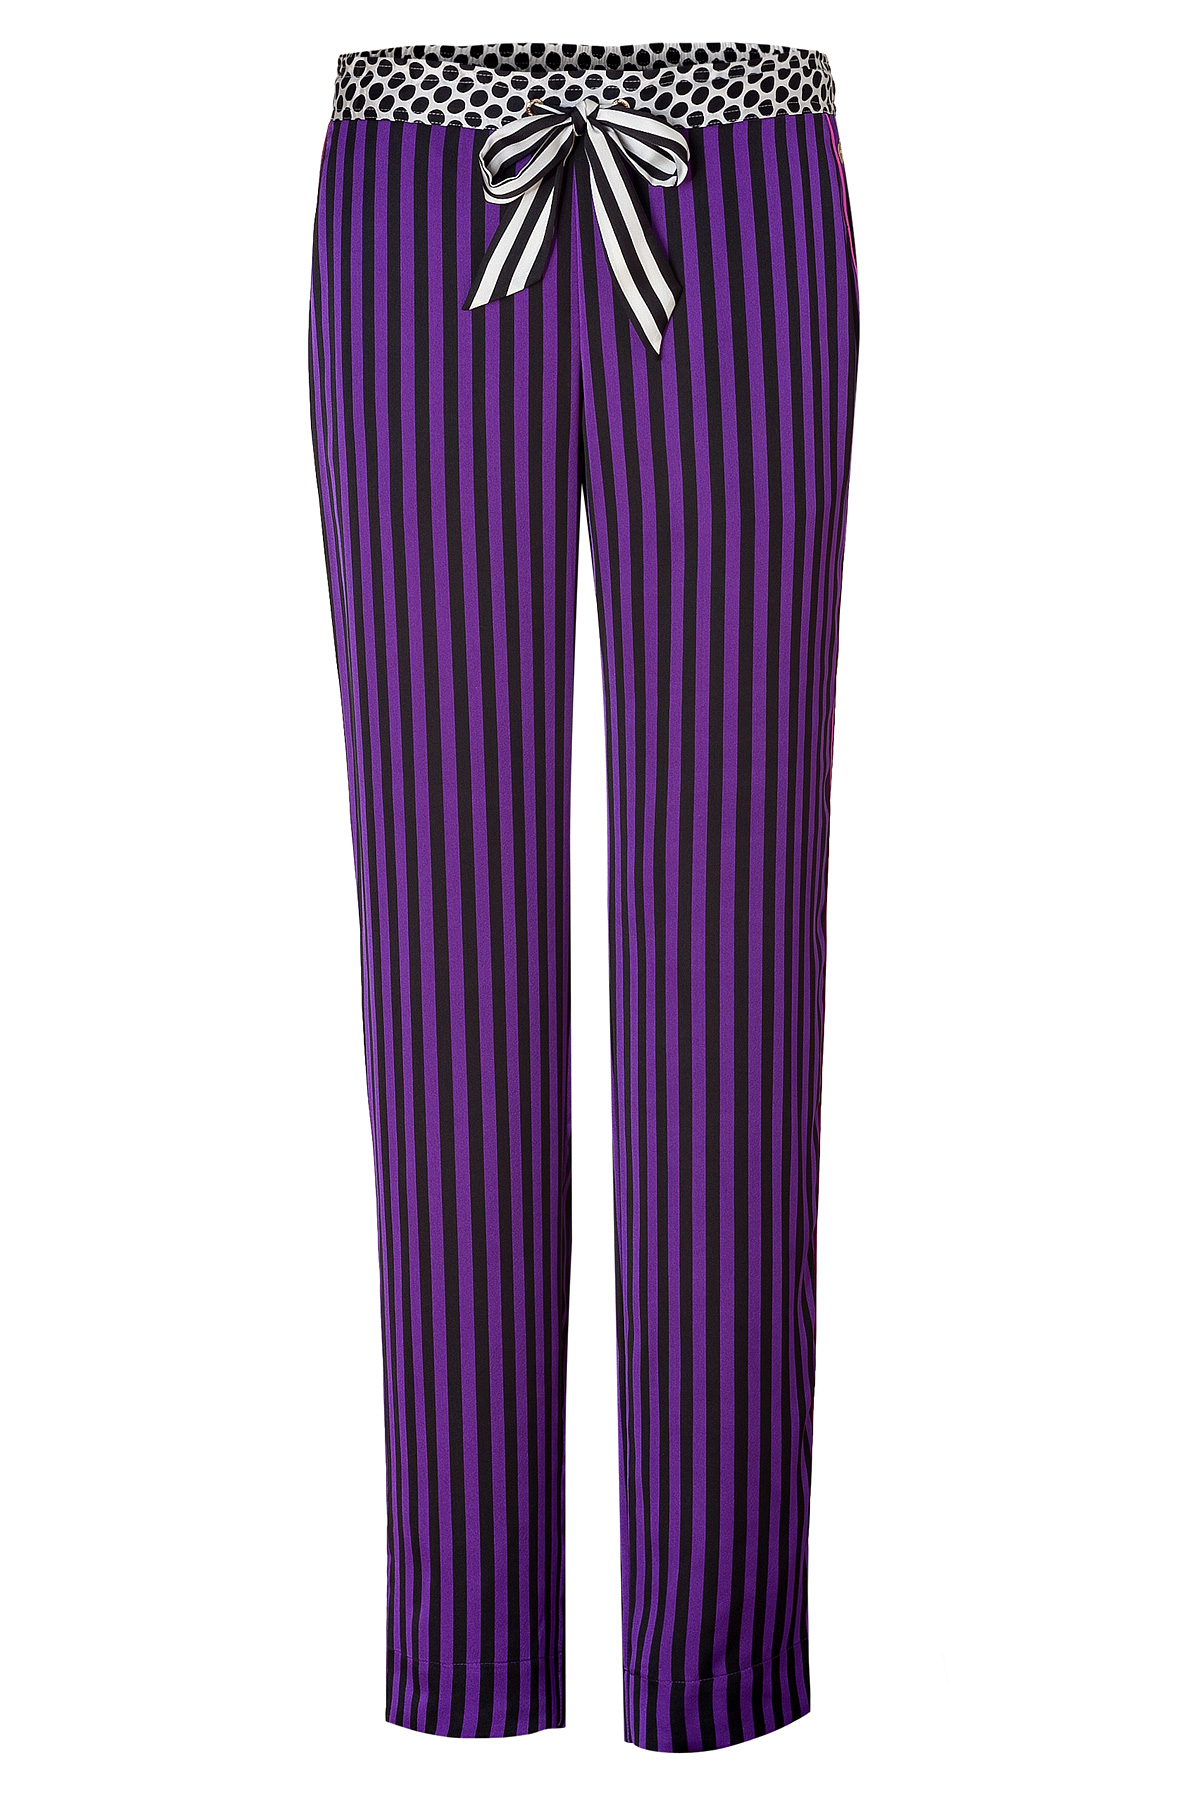 Juicy Couture Winter Irisblack Striped Pant with Contrast ...